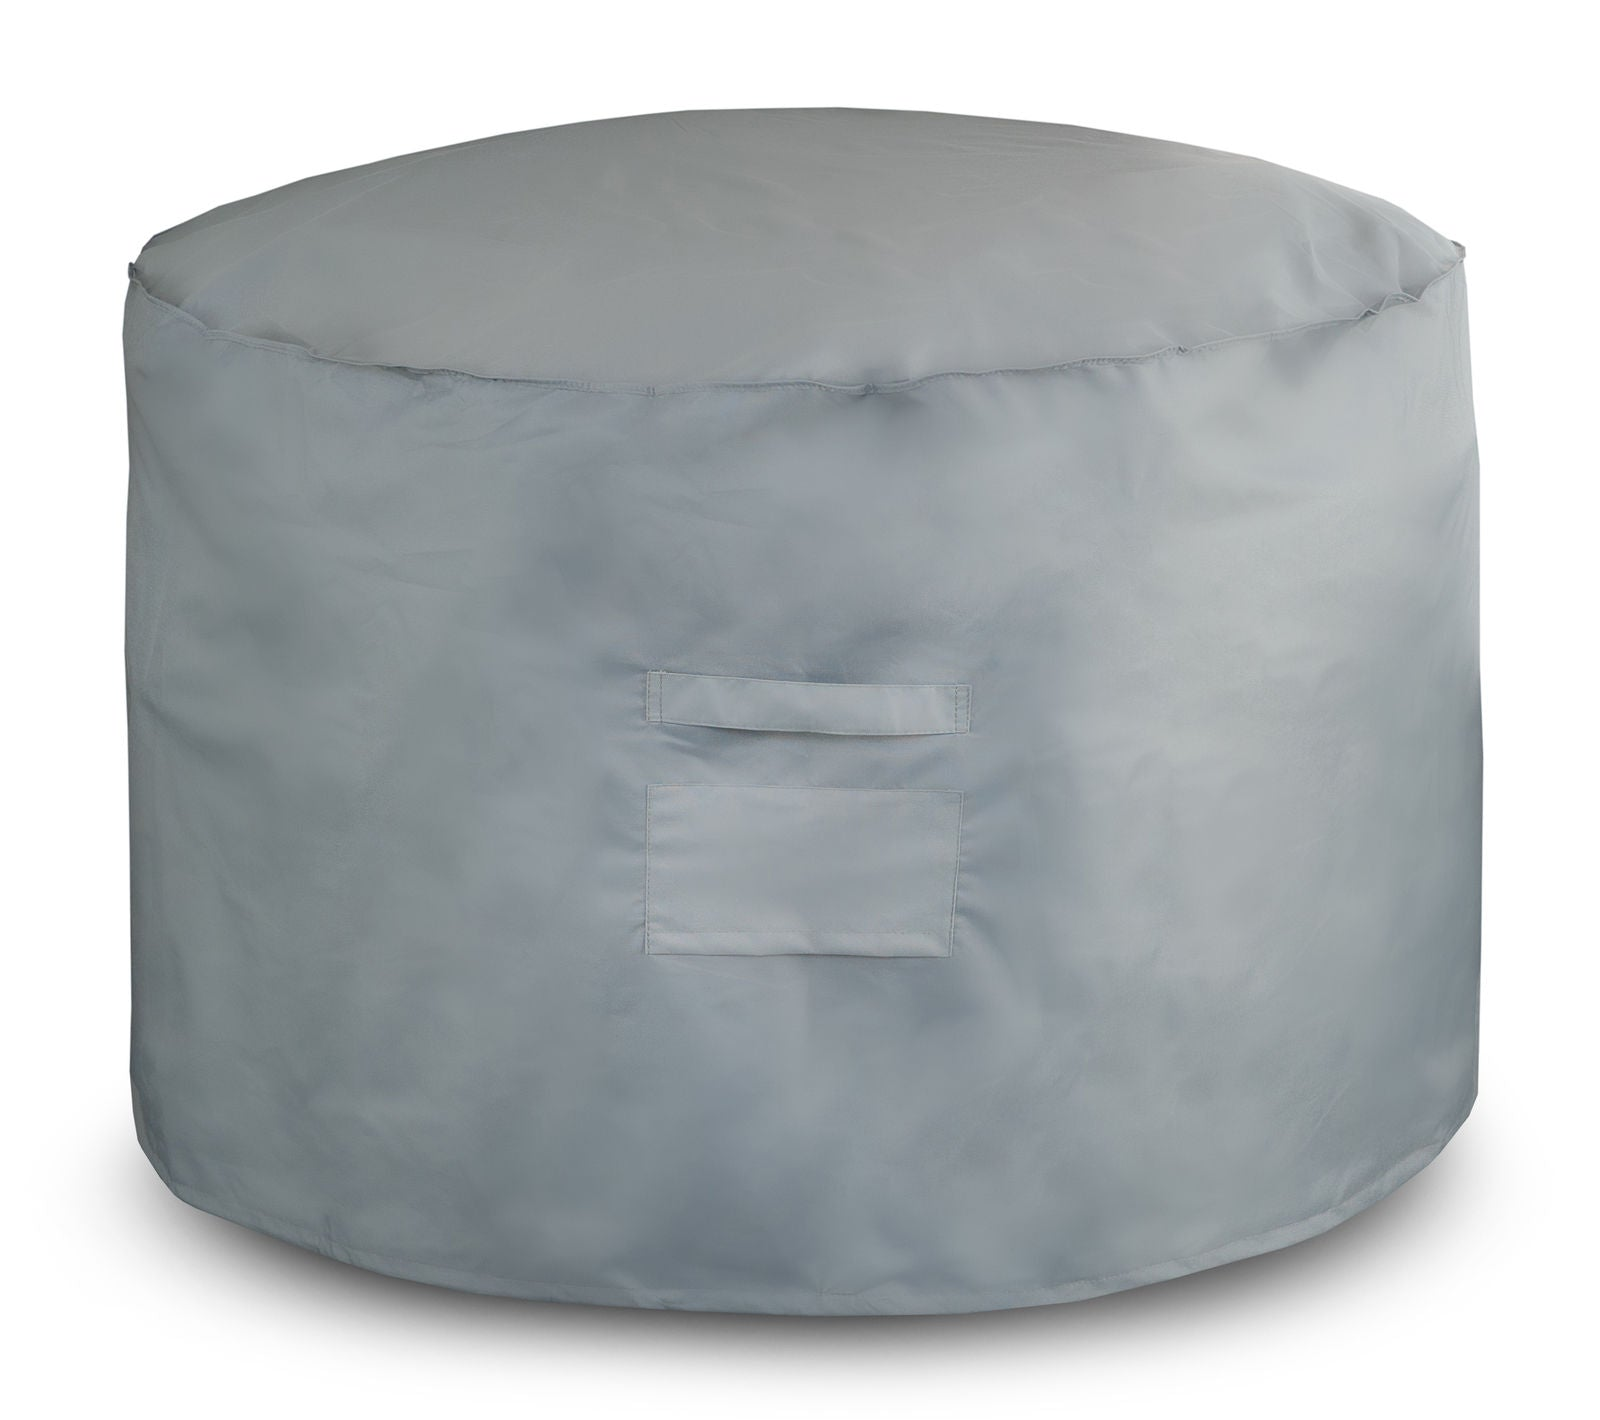 DELUXE ROUND PATIO TABLE COVER